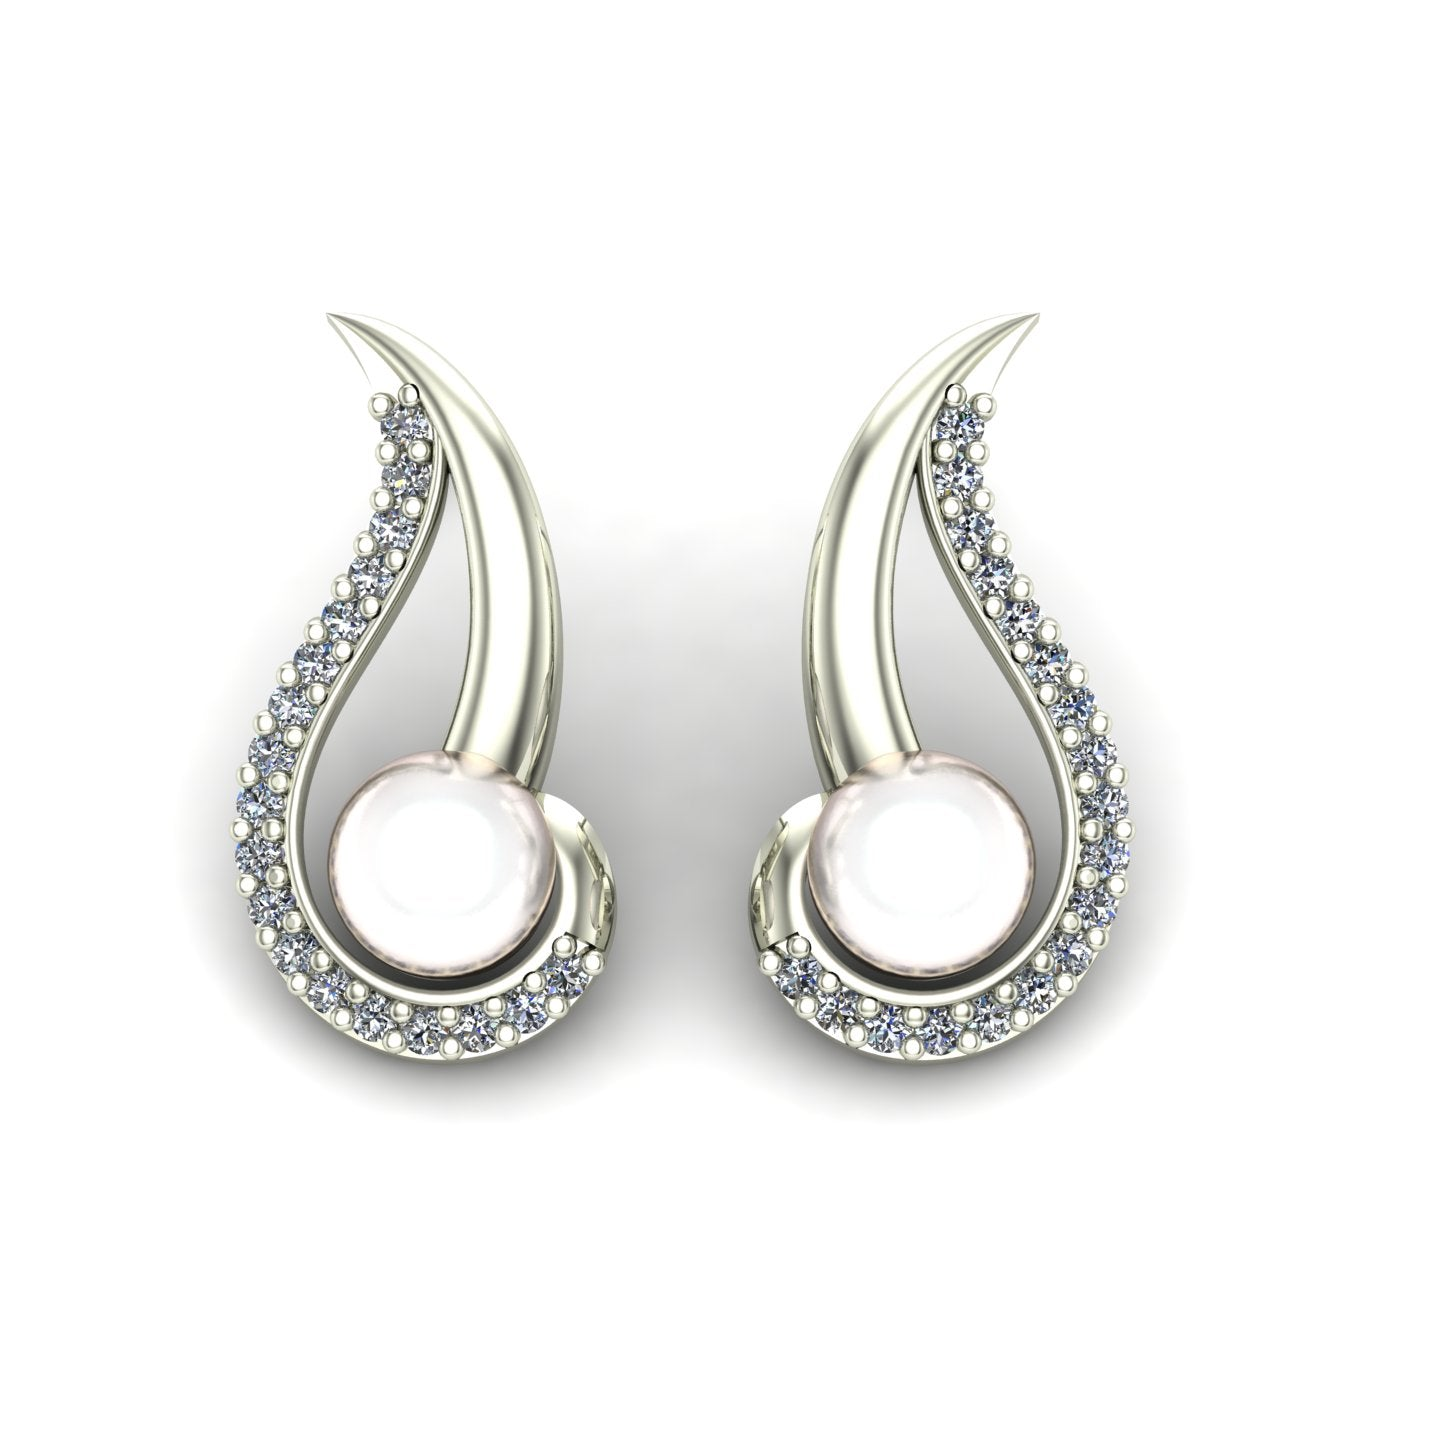 Pearl and diamond swirl earrings in 14k white gold